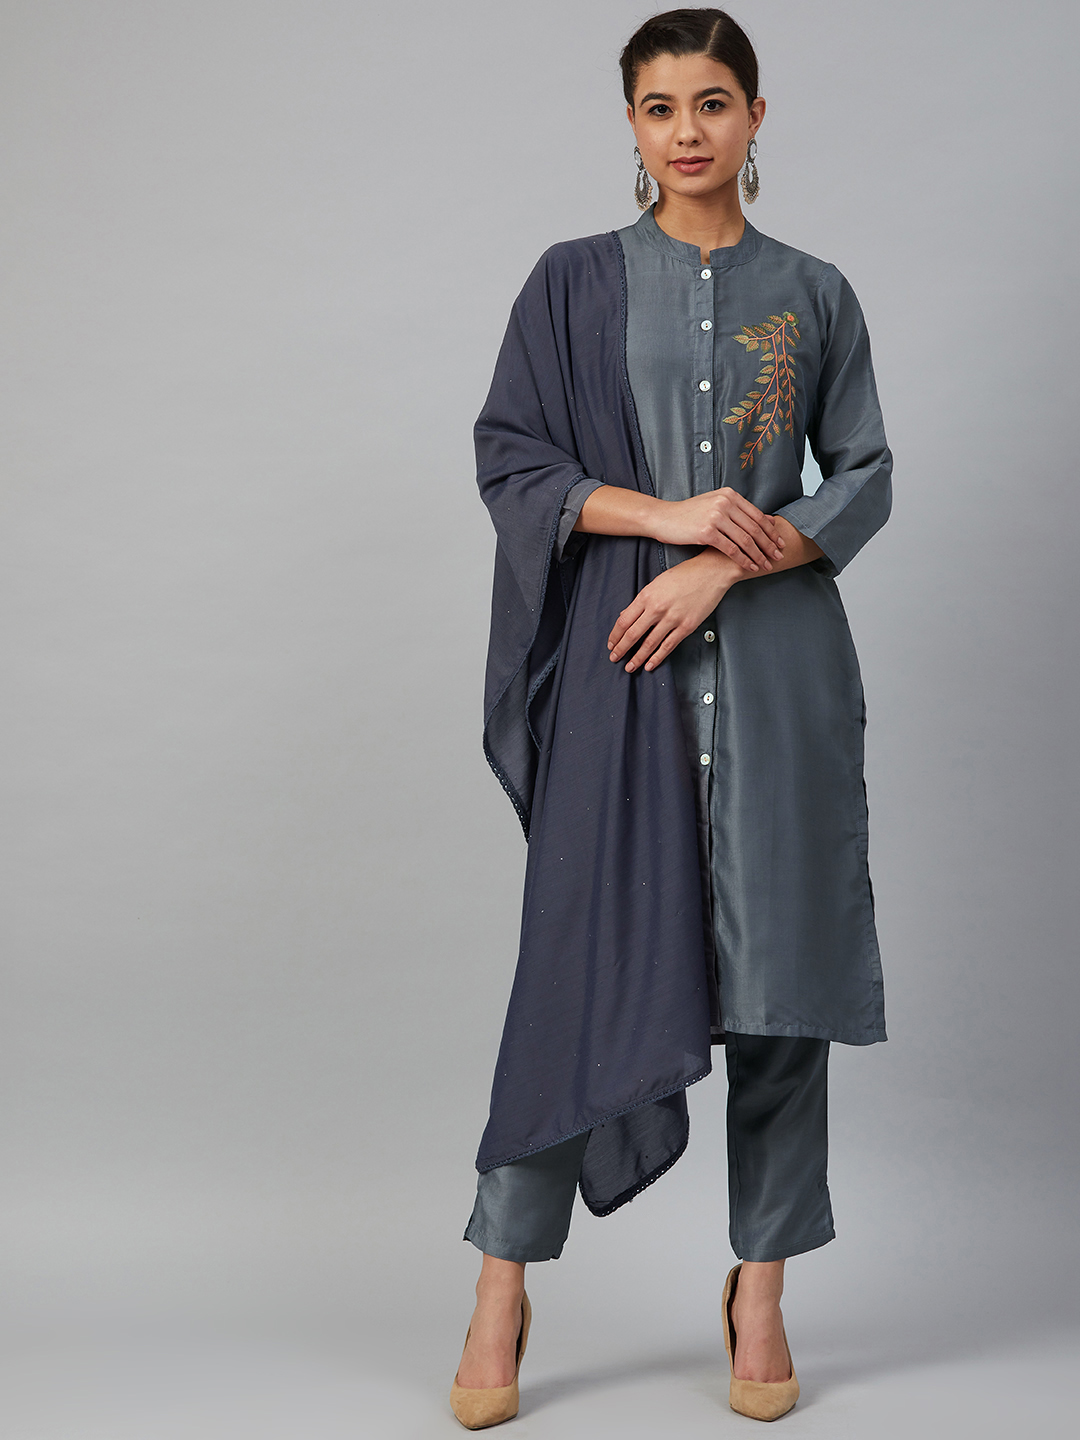 Jompers | Jompers® Women Grey Cotton Silk Embroidered Kurta with pants and dupatta  set